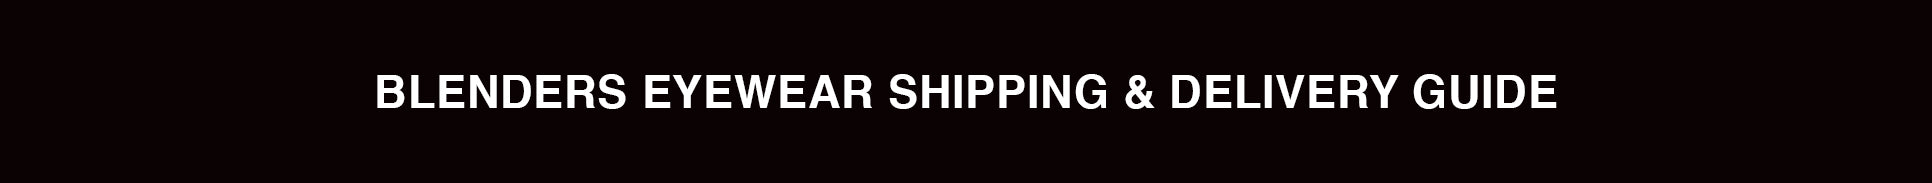 SHIPPING & DELIVERY GUIDE